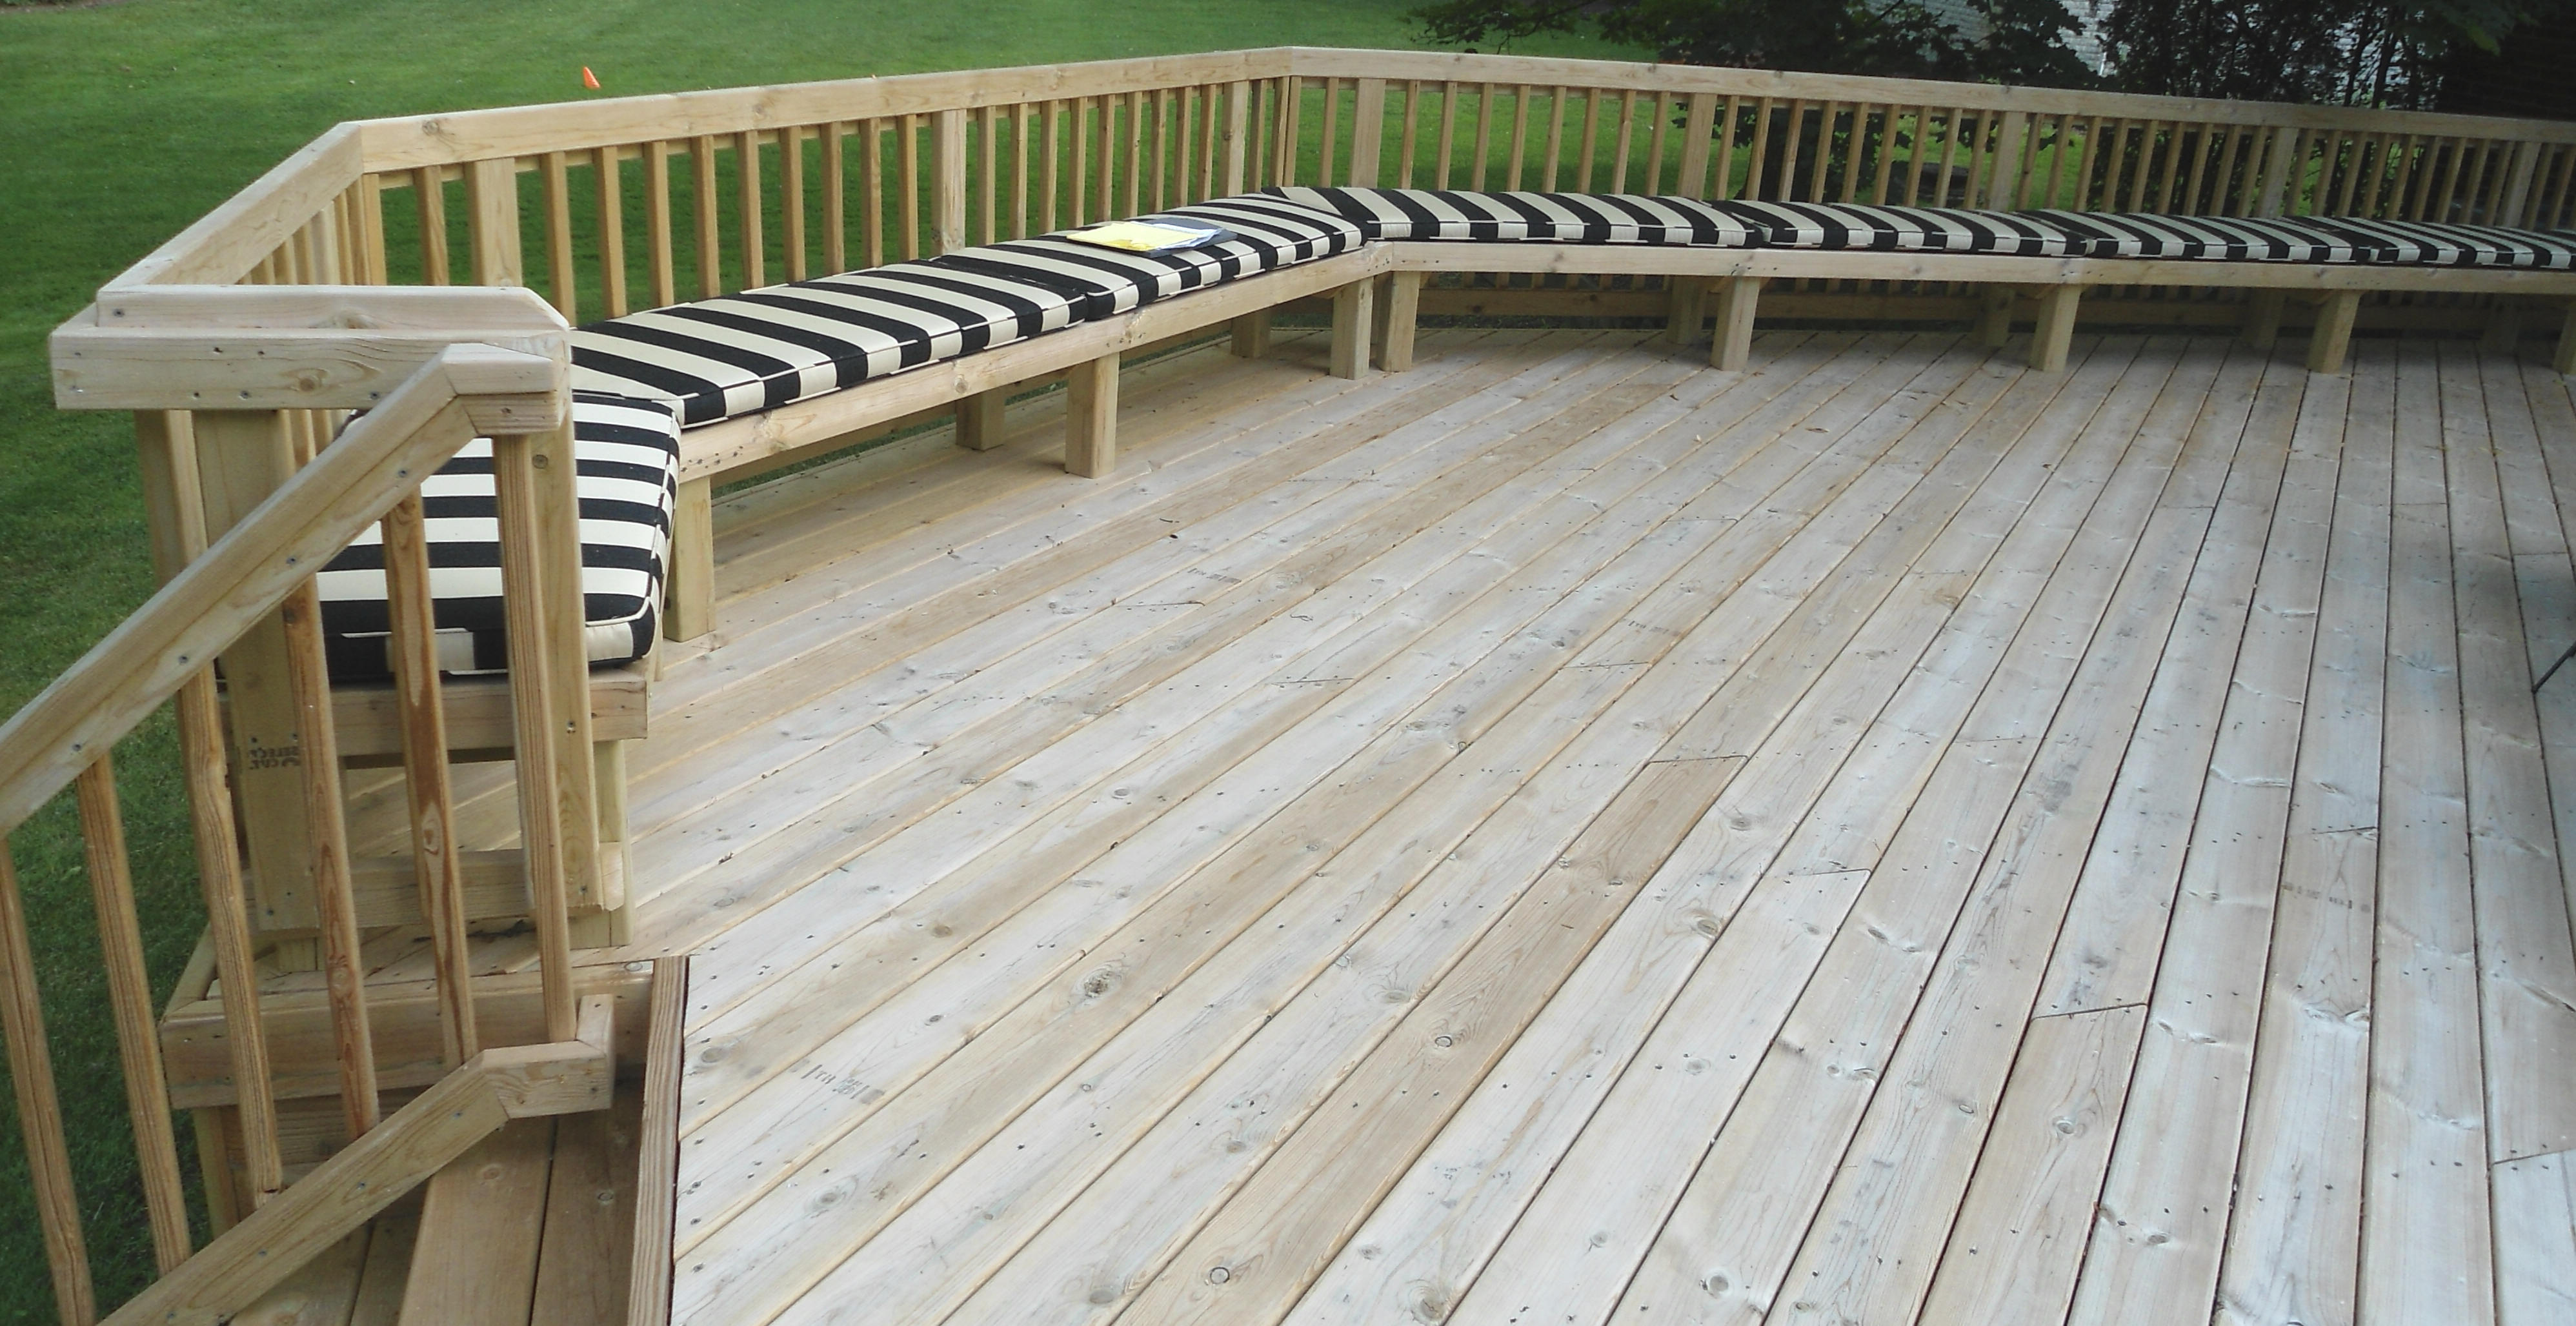 How To Waterproof Wood Furniture For Outdoors Painted